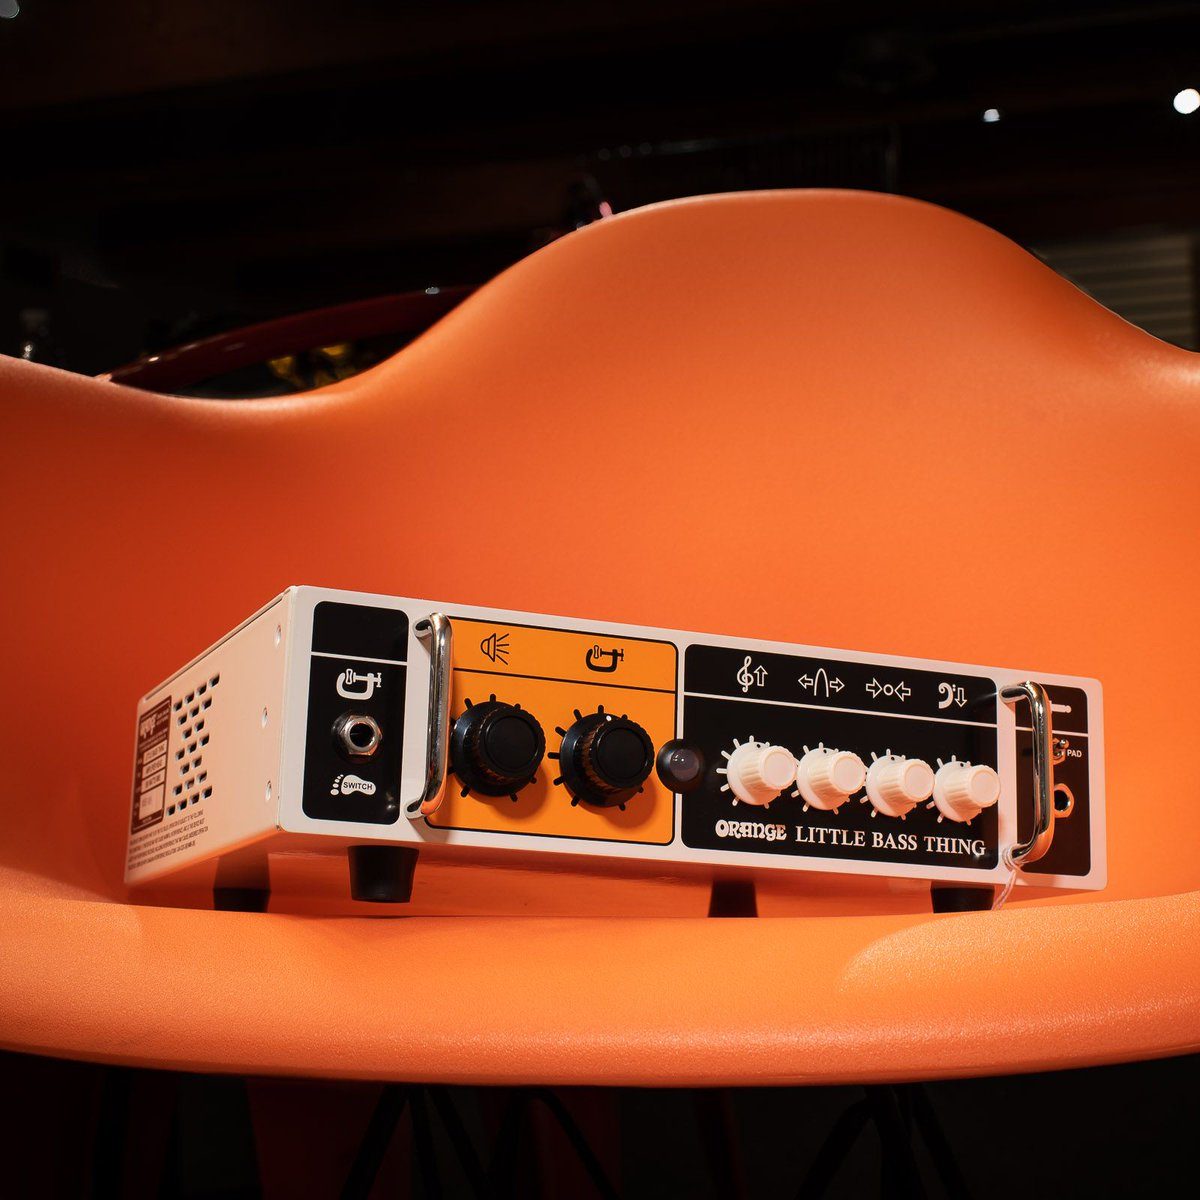 A Little Bass Thing with 500 watts of big bass sound. https://buff.ly/2SL4zki #chicagomusicexchange #orange #500w #littlebassthing #classD #solidstate #gearwire #gearybusey #guitarspotter #guitarphotography #guitarsdaily #tonemob #knowyourtonepic.twitter.com/PoCagBwqmE